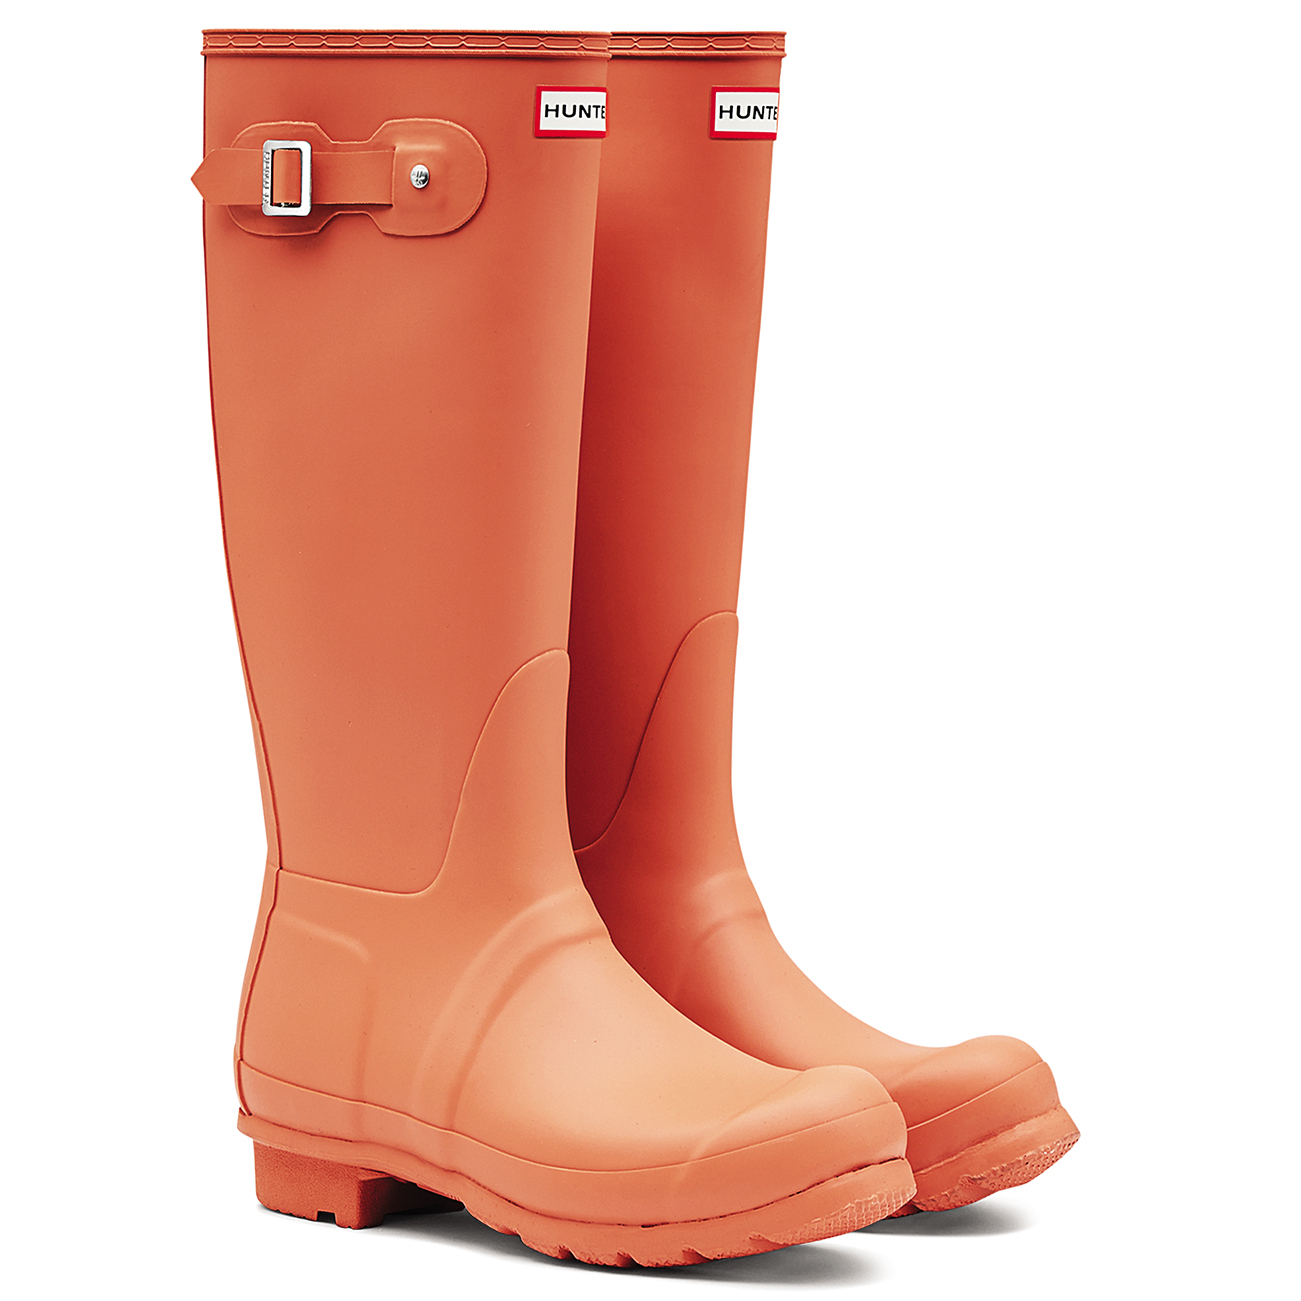 Cool A Lot Of Women  Boots, Hunter Boots, Leather Boots, And Hightop Sneakers As Soon As They Arrived In A Supercute Neon Pinkandorange Box, I Ripped Them Open And Slid The Soles Into A Pair Of